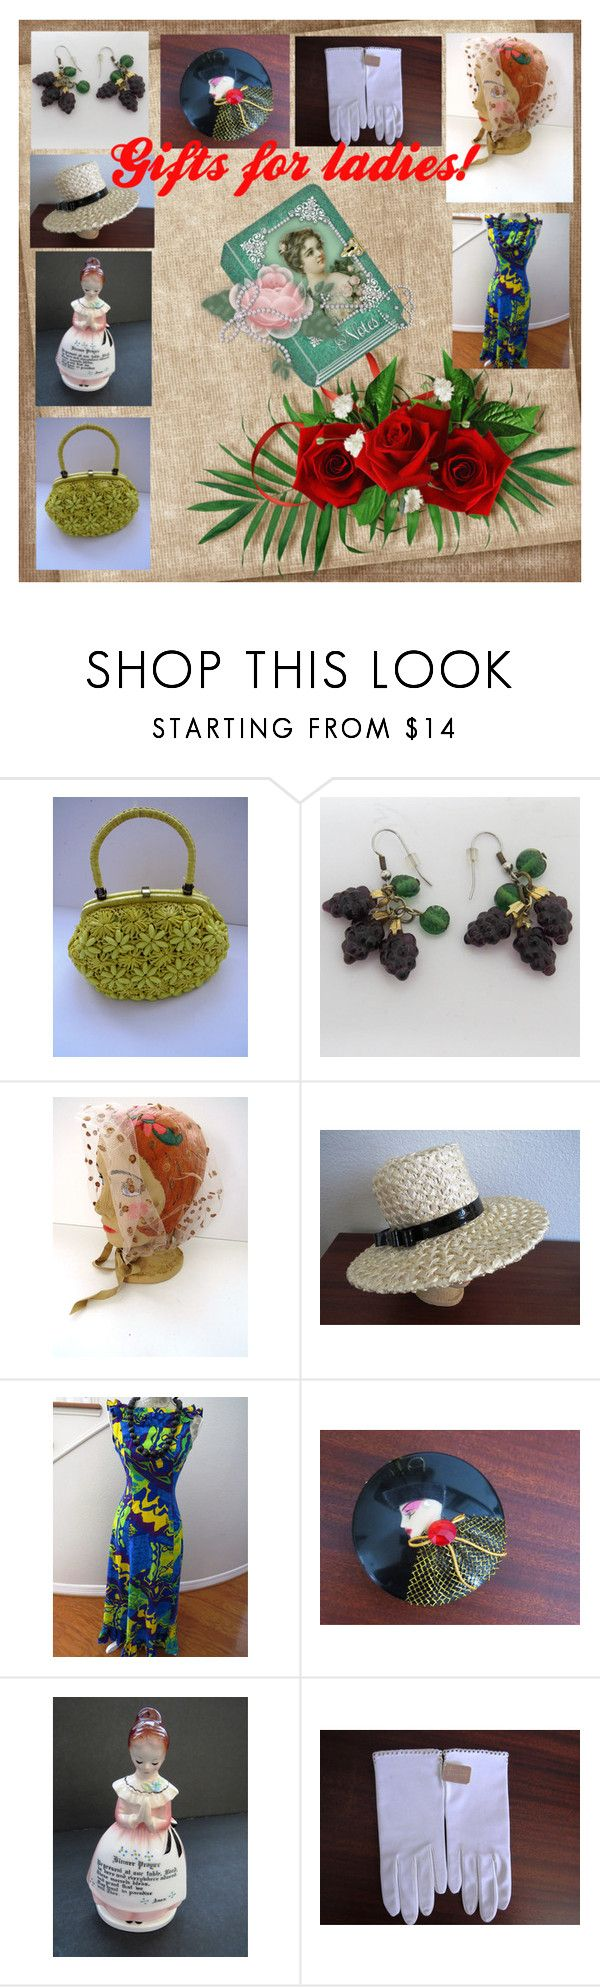 Gifts for ladies! by luckystanlv on Polyvore